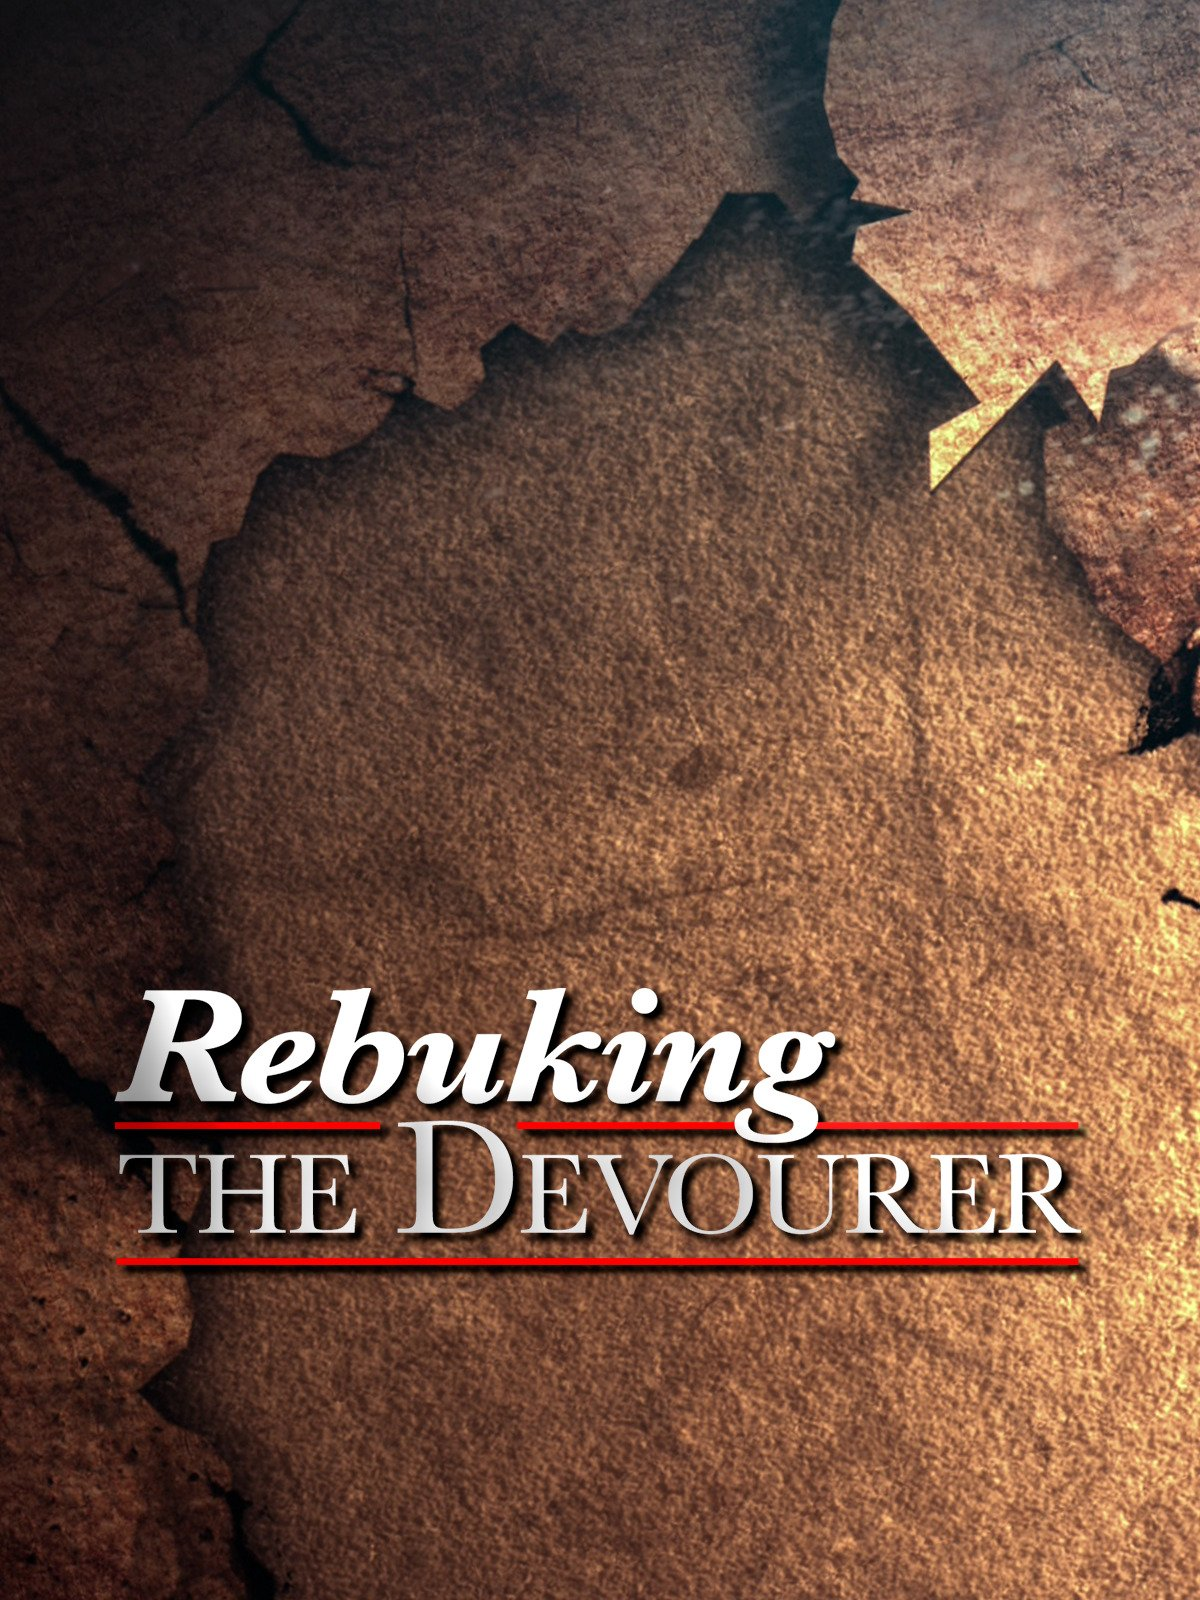 Rebuking the Devourer